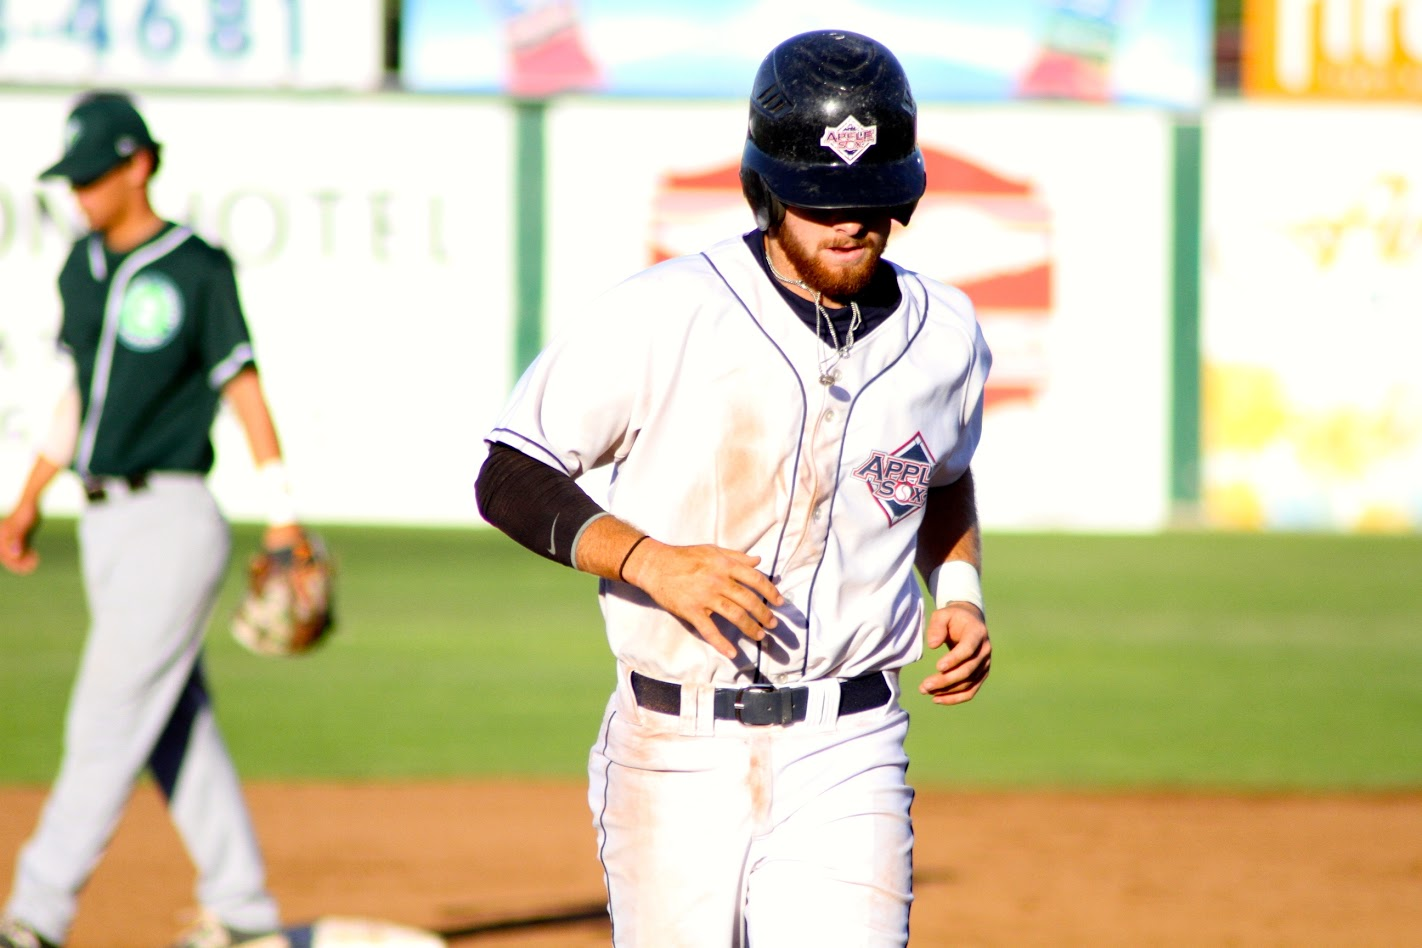 The Wenatchee AppleSox fought hard, scoring five two-out runs after trailing 5-0 to the Yakima Valley after two innings at Paul Thomas Sr. Stadium. Yakima Valley got the better of Wenatchee in the tenth, winning 6-5 in extra frames.